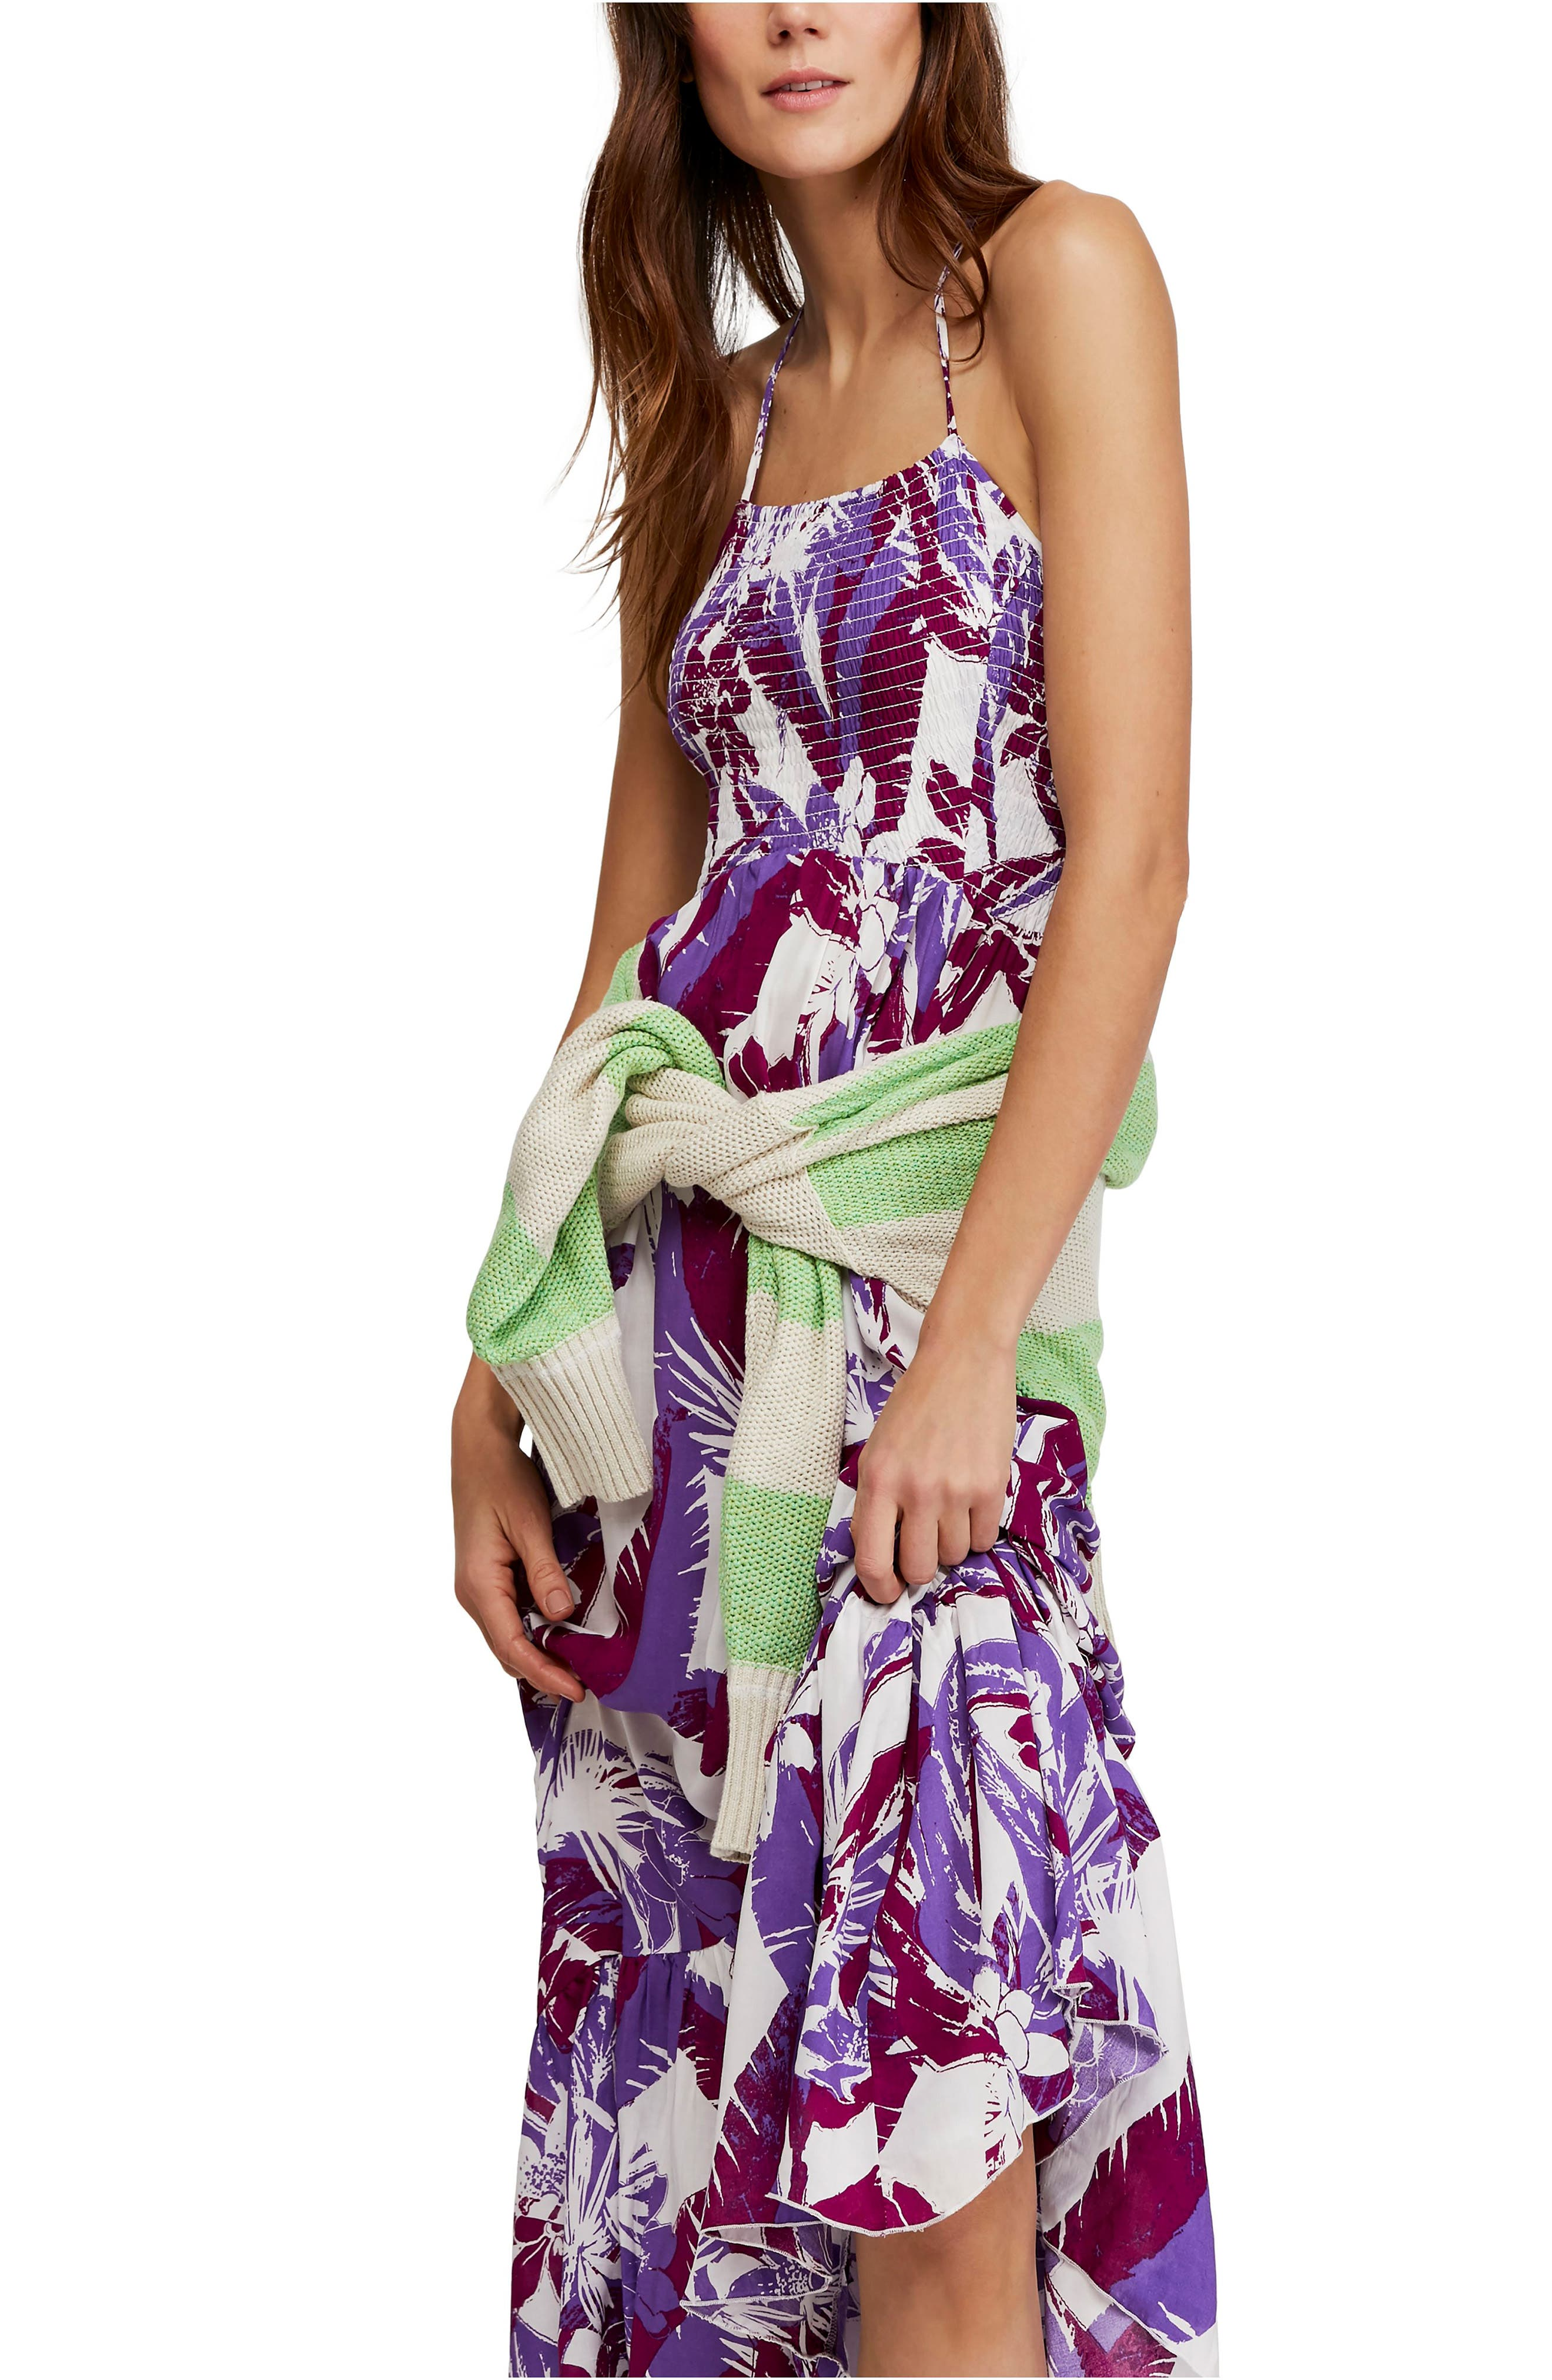 Free People Heat Wave Floral Print High/low Dress, Ivory